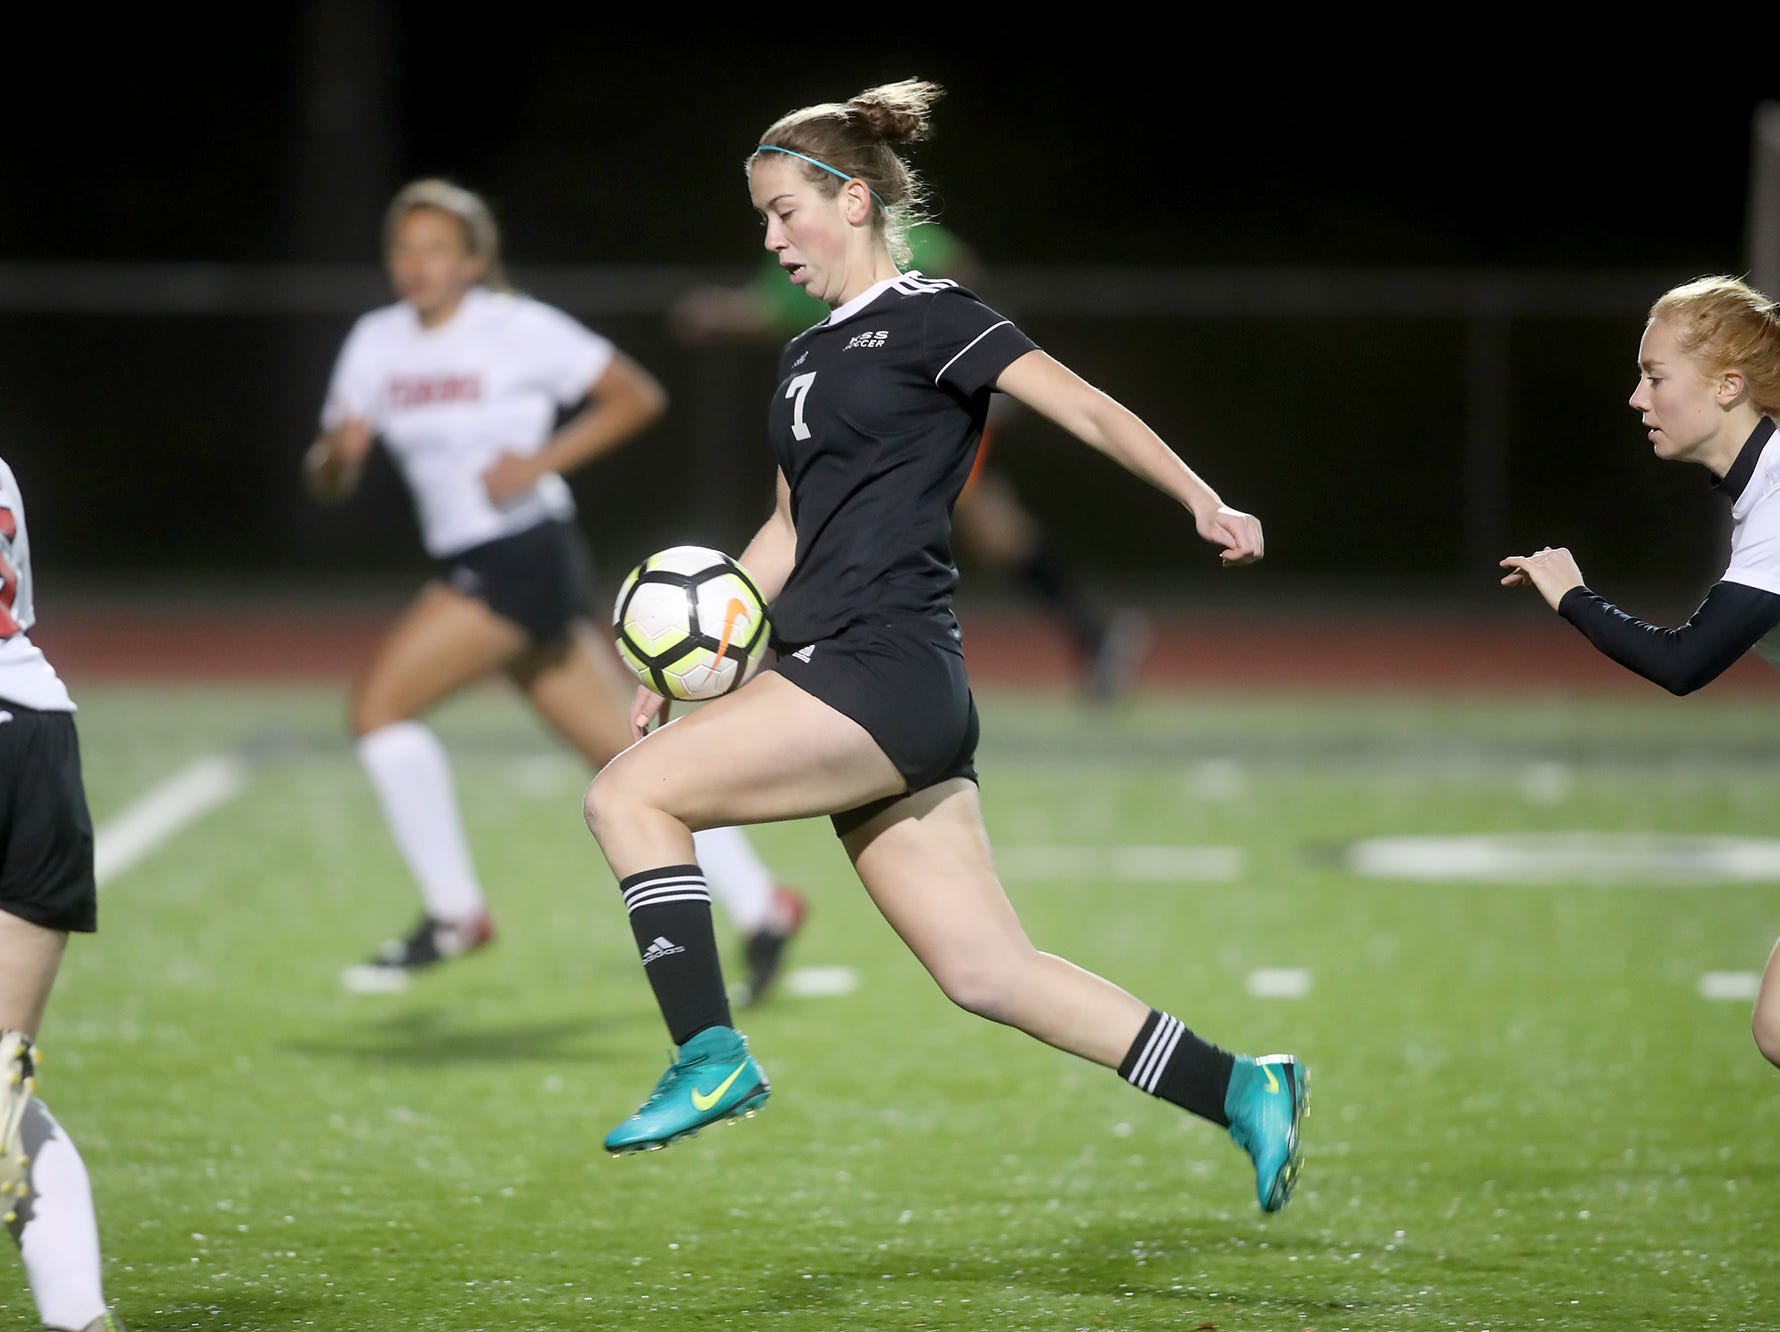 Klahowya player Hope Martin heads down towards the goal keeper as the team defeated Tenino 7-0 in a state soccer game Tuesday, November 6, 2018 at Silverdale Stadium.